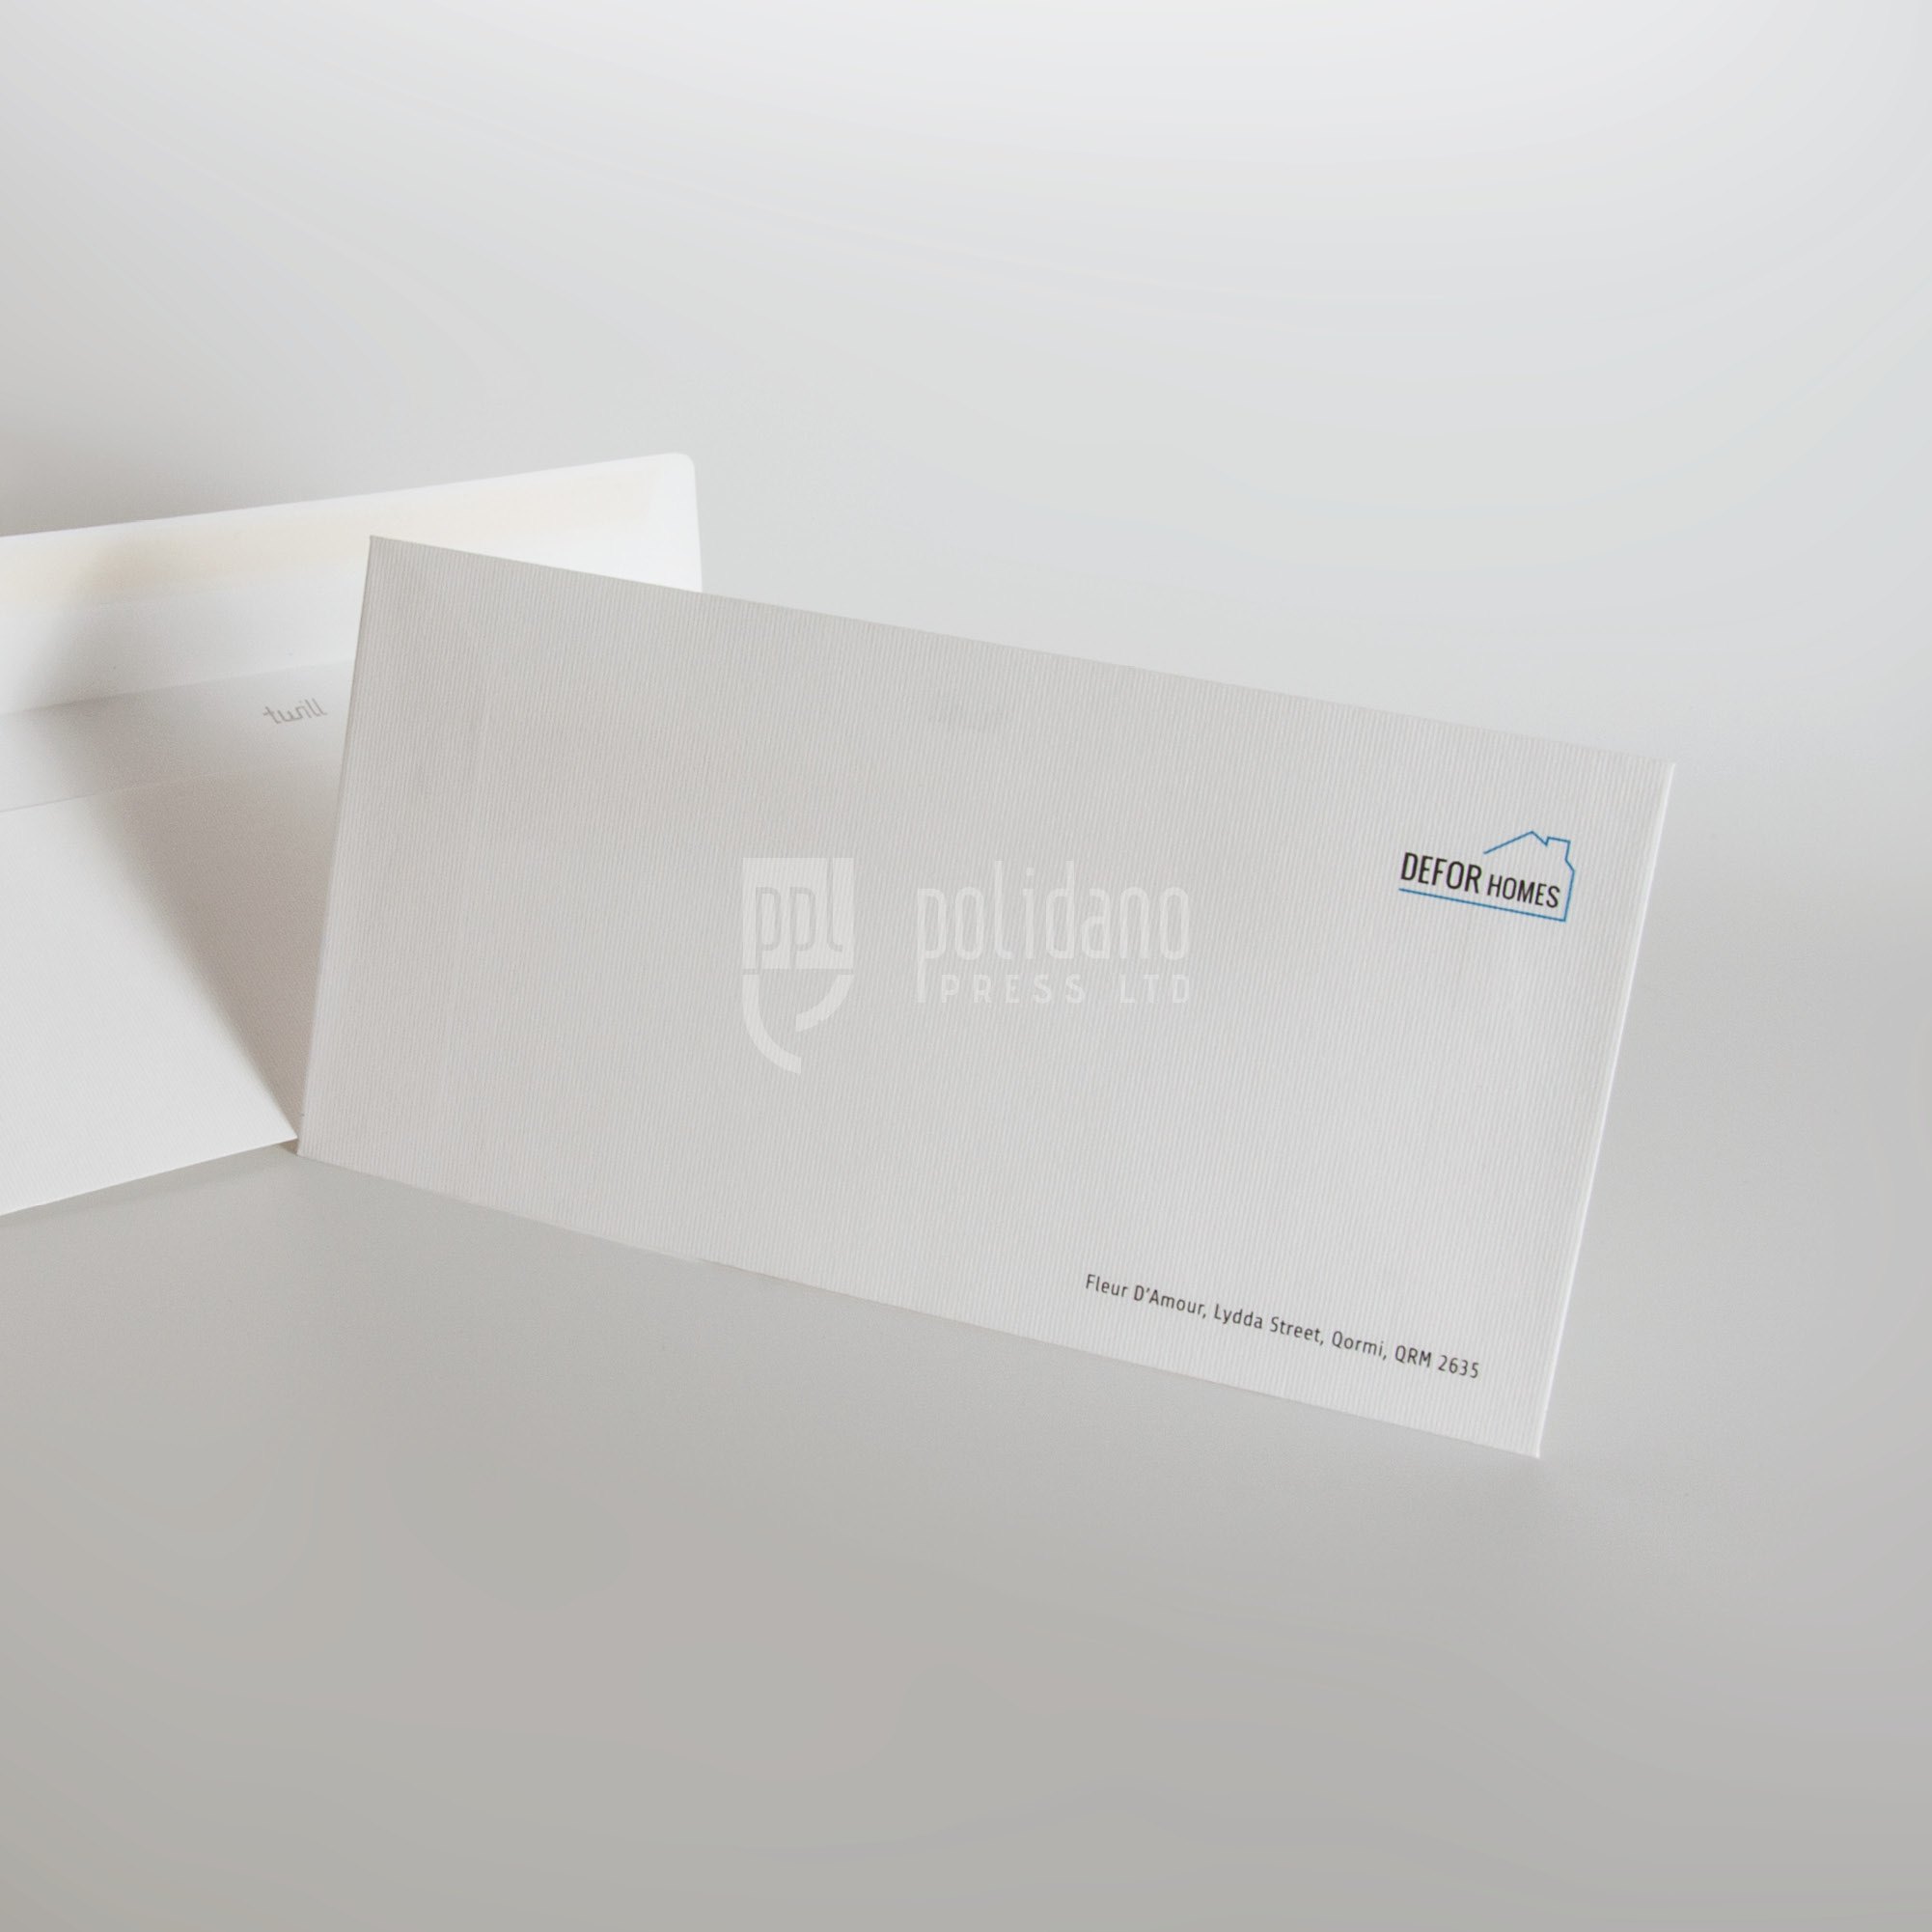 Defor Homes envelopes